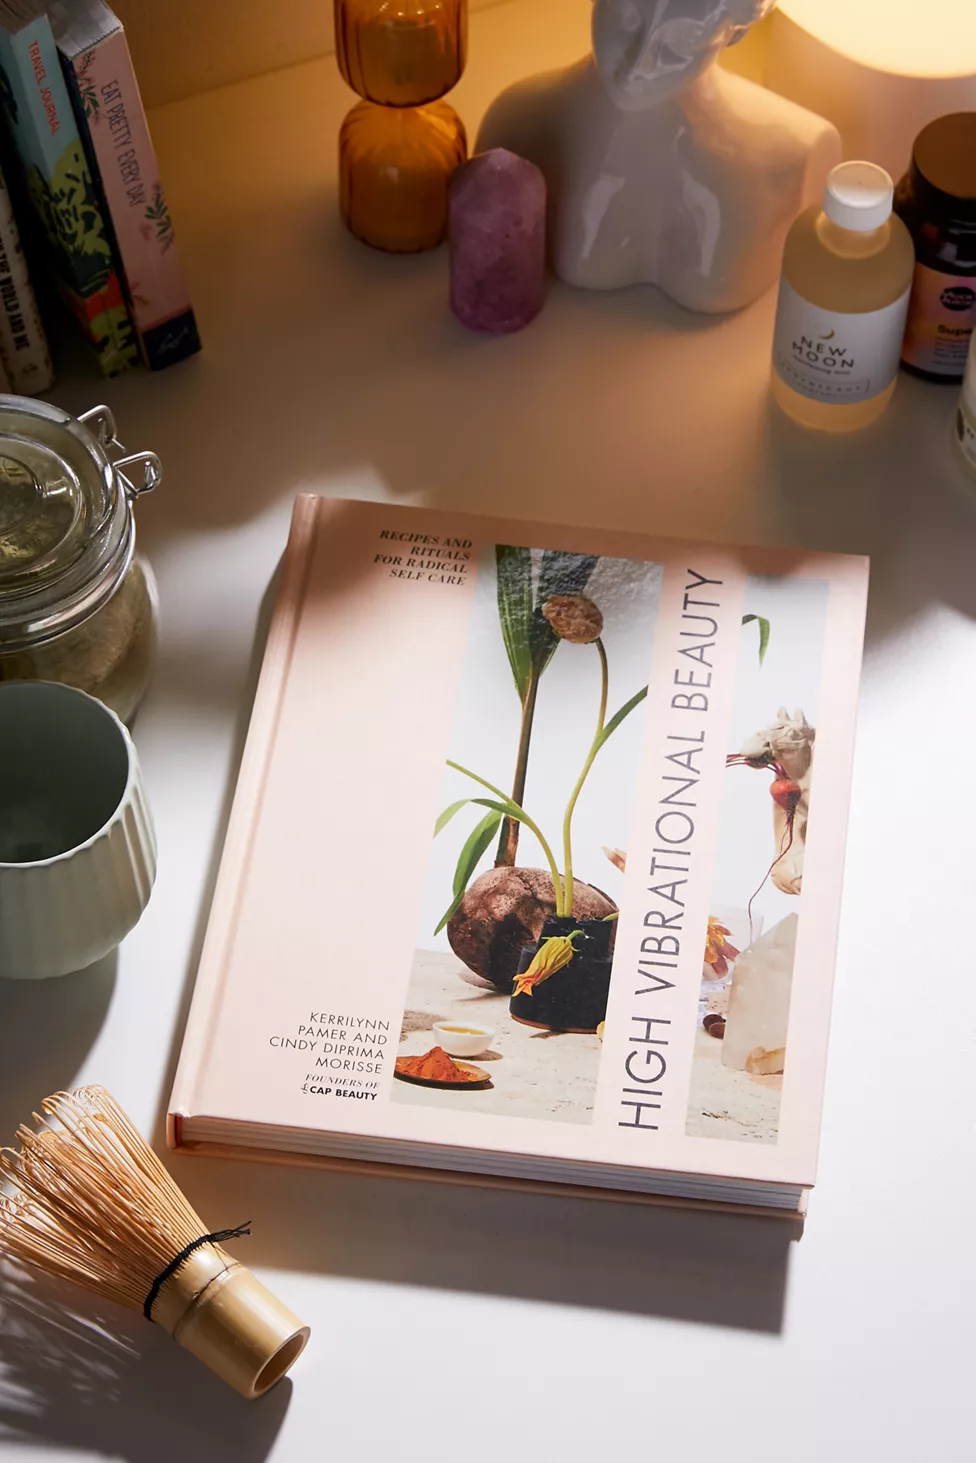 High Vibrational Beauty book on a table with a matcha whisk and crystals